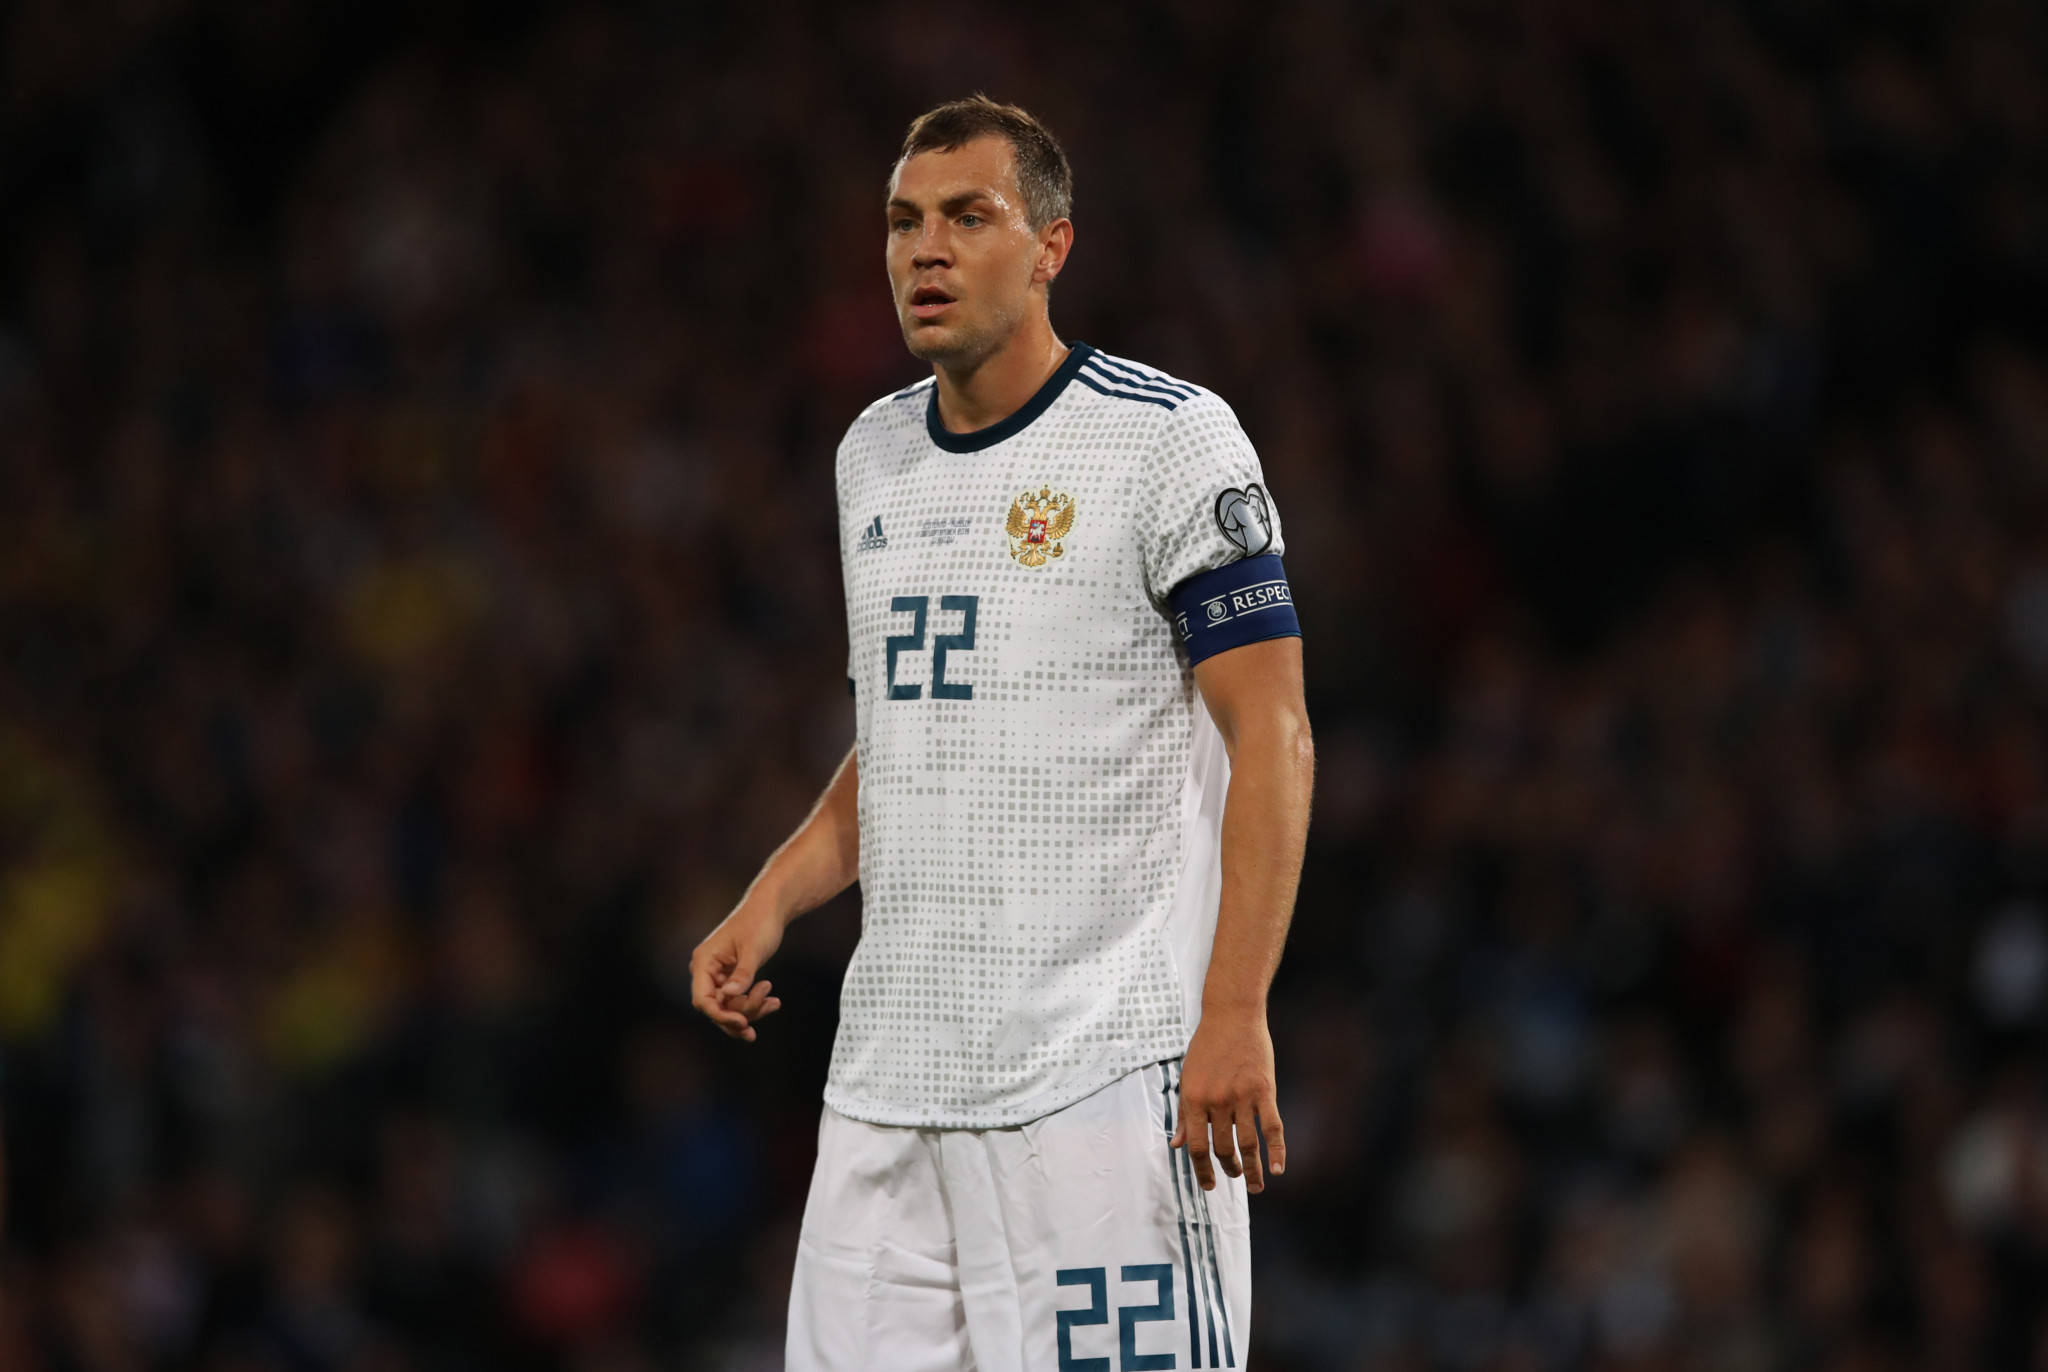 Russia are free to compete at next year's UEFA European Championship under their own flag ©Getty Images